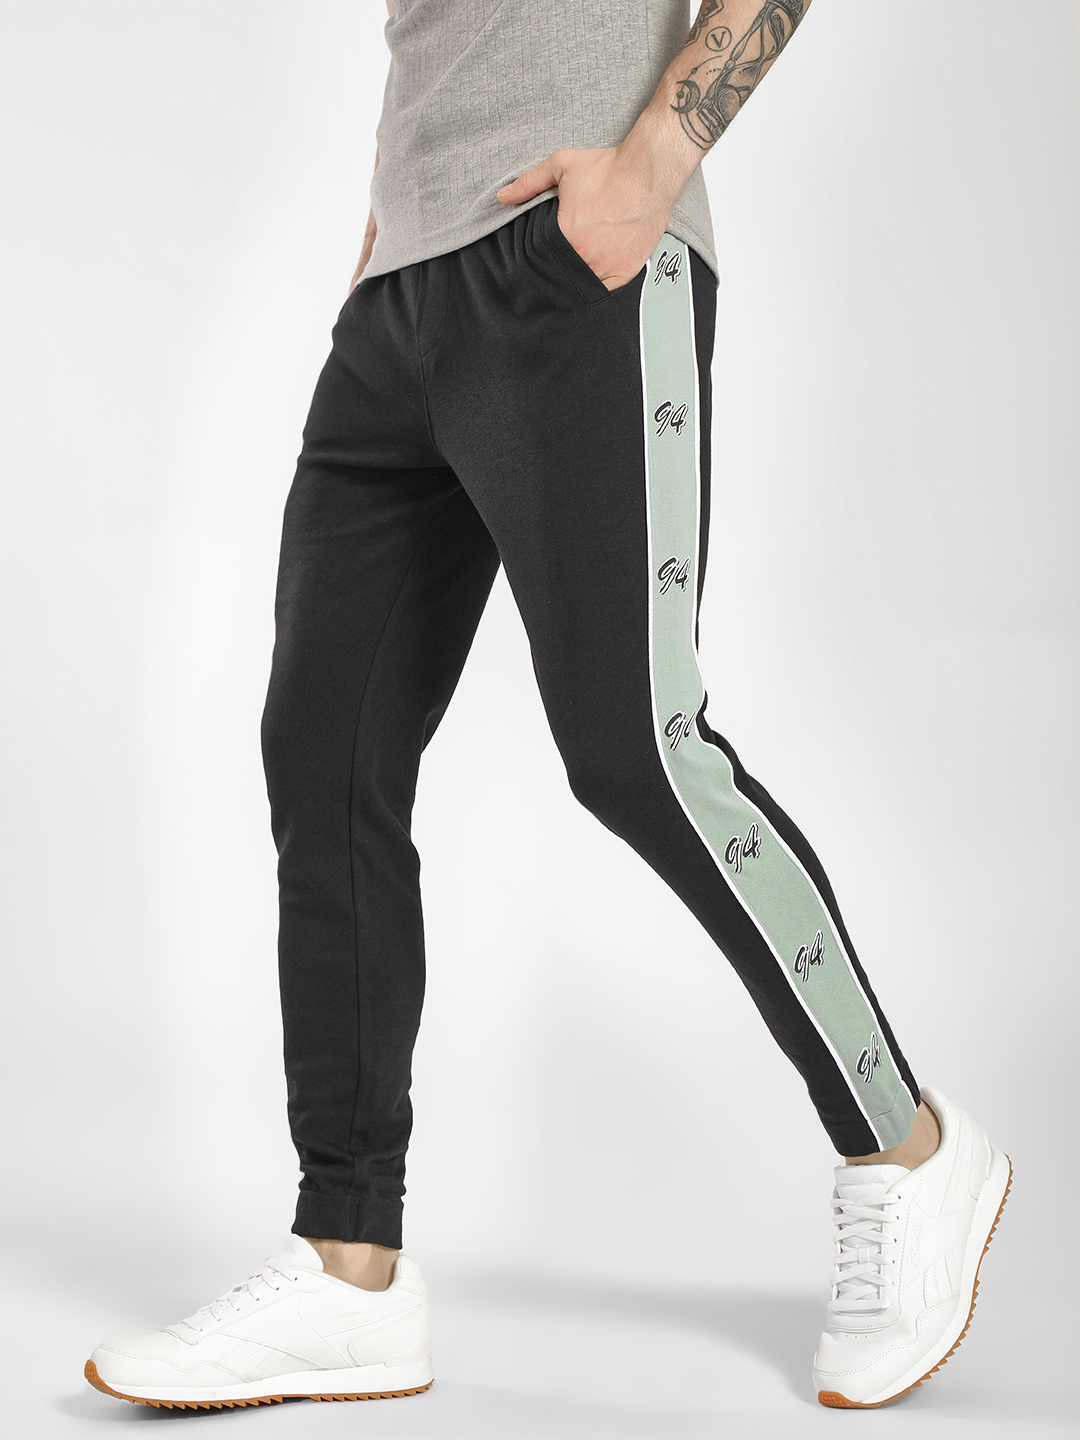 KOOVS Black 94 Print Side Tape Joggers 1